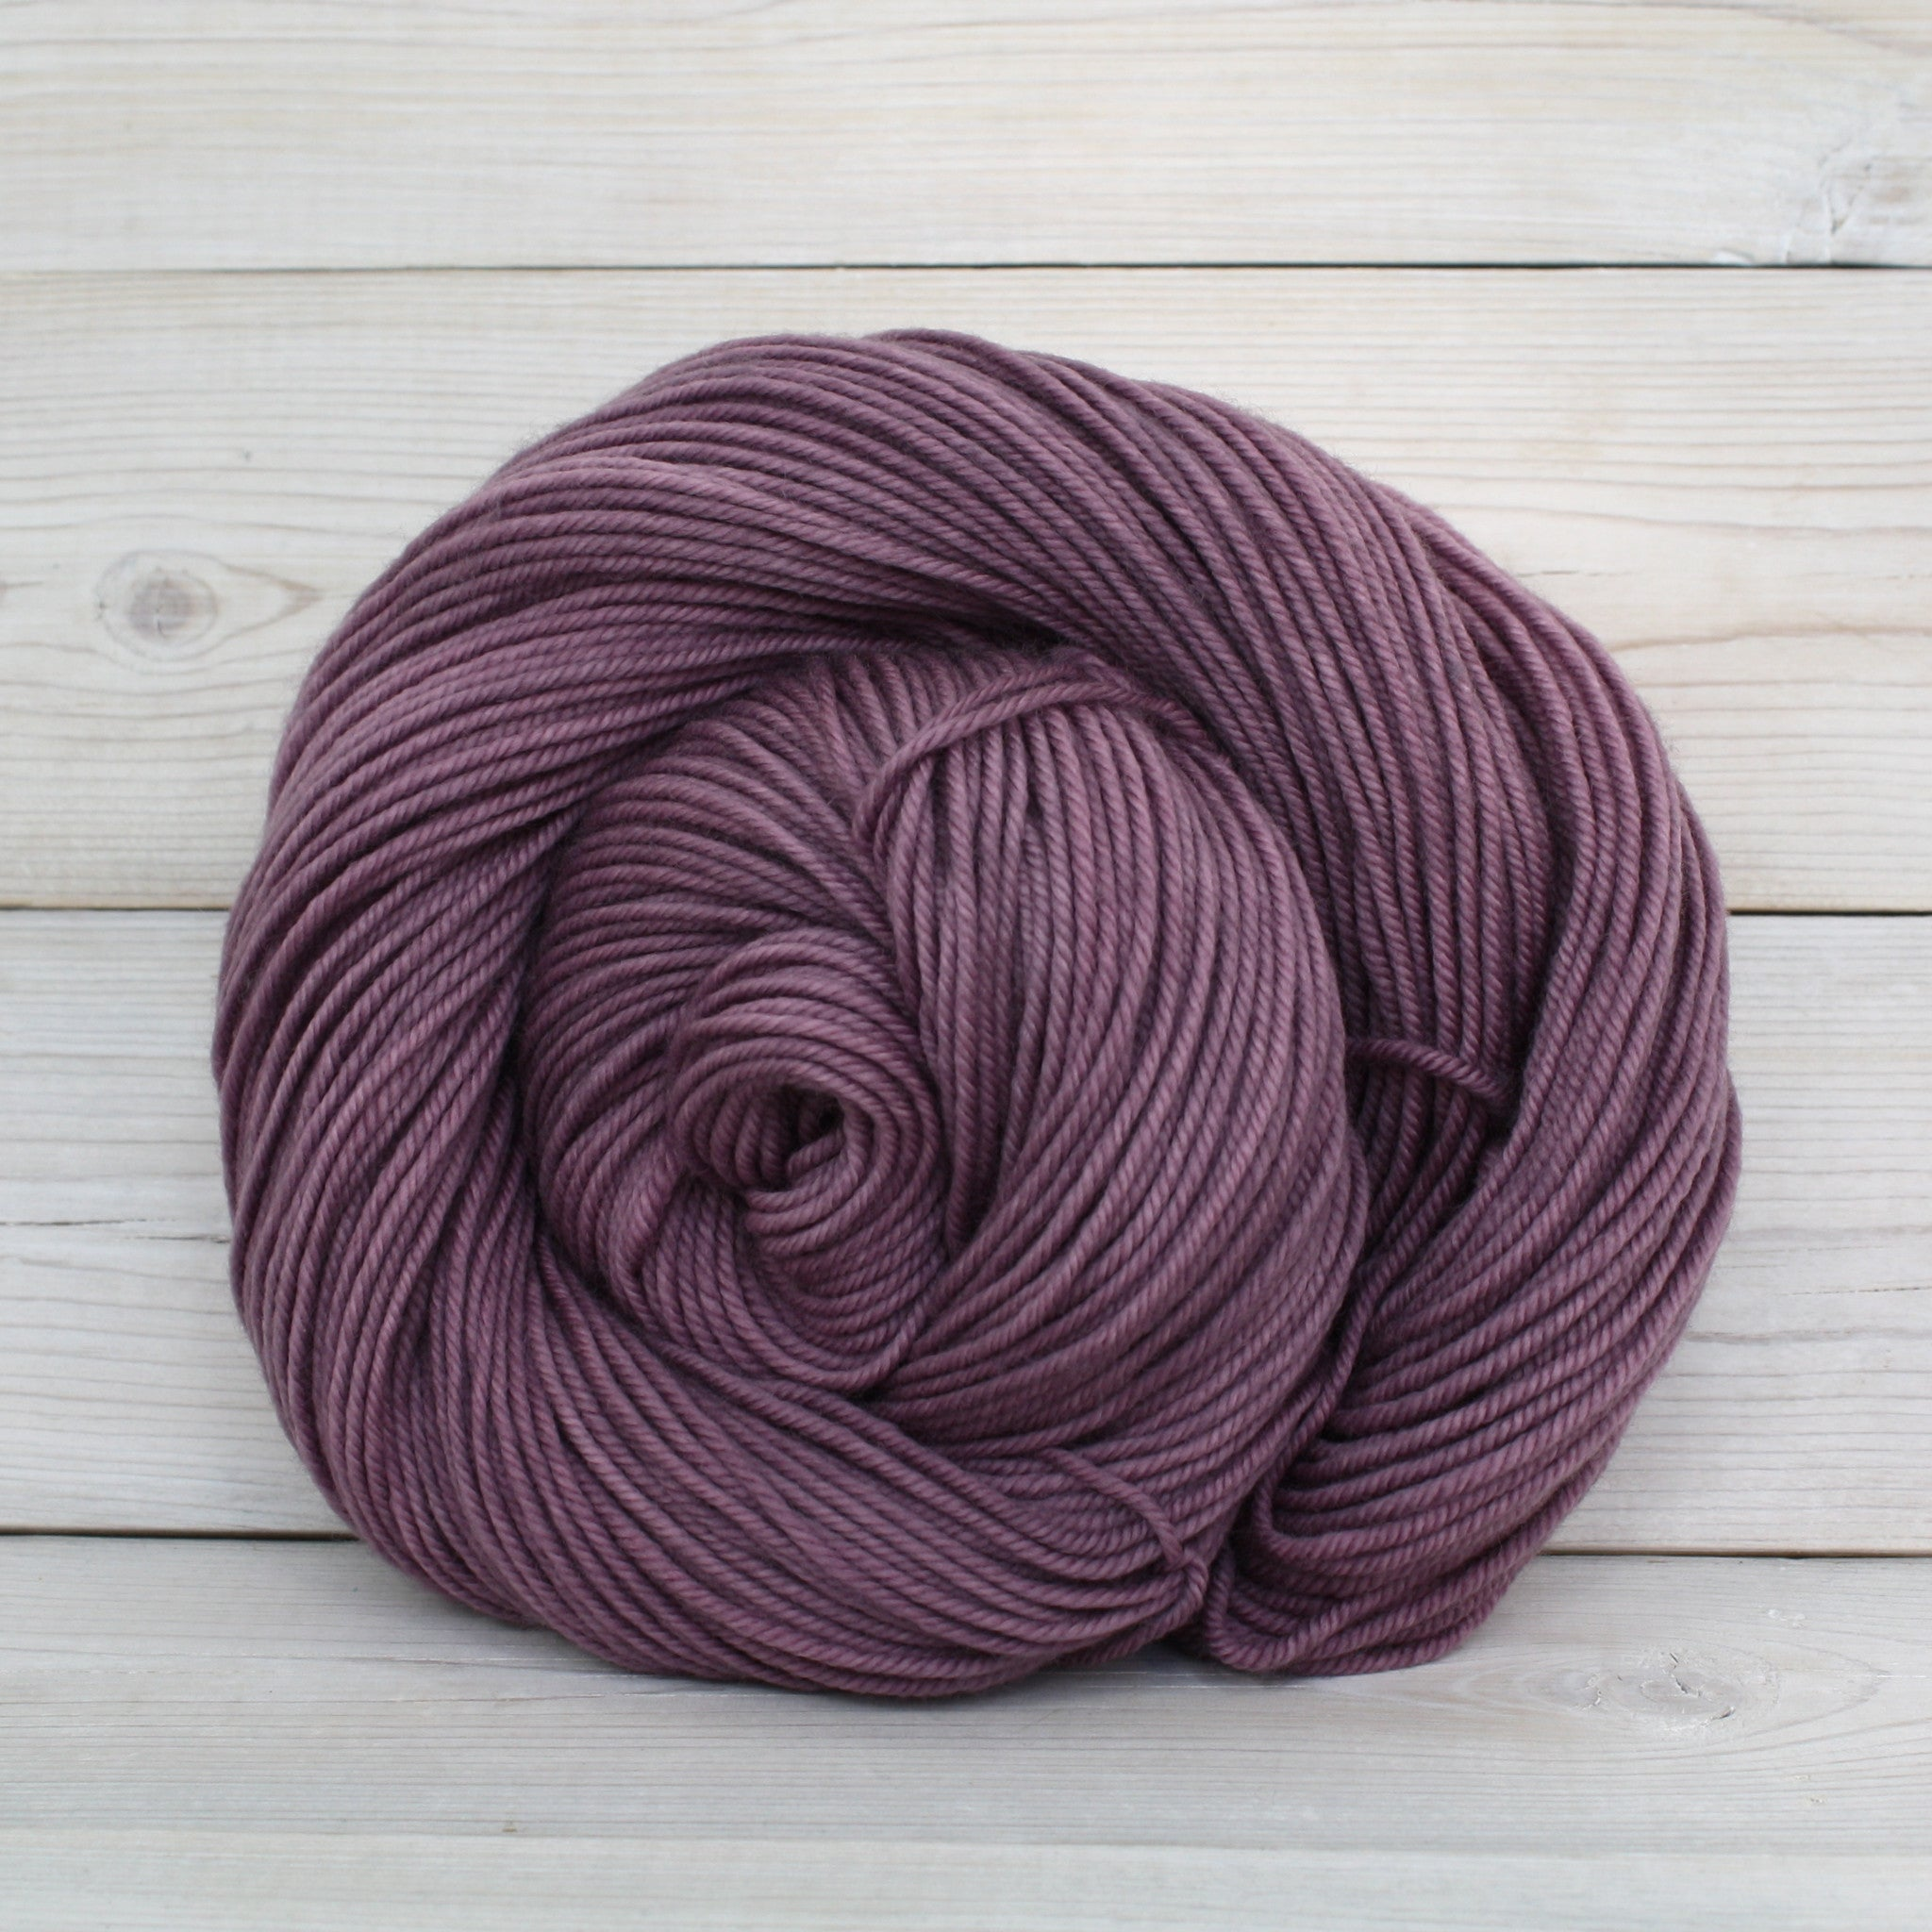 Luna Grey Fiber Arts Calypso Yarn | Colorway: Sanctuary